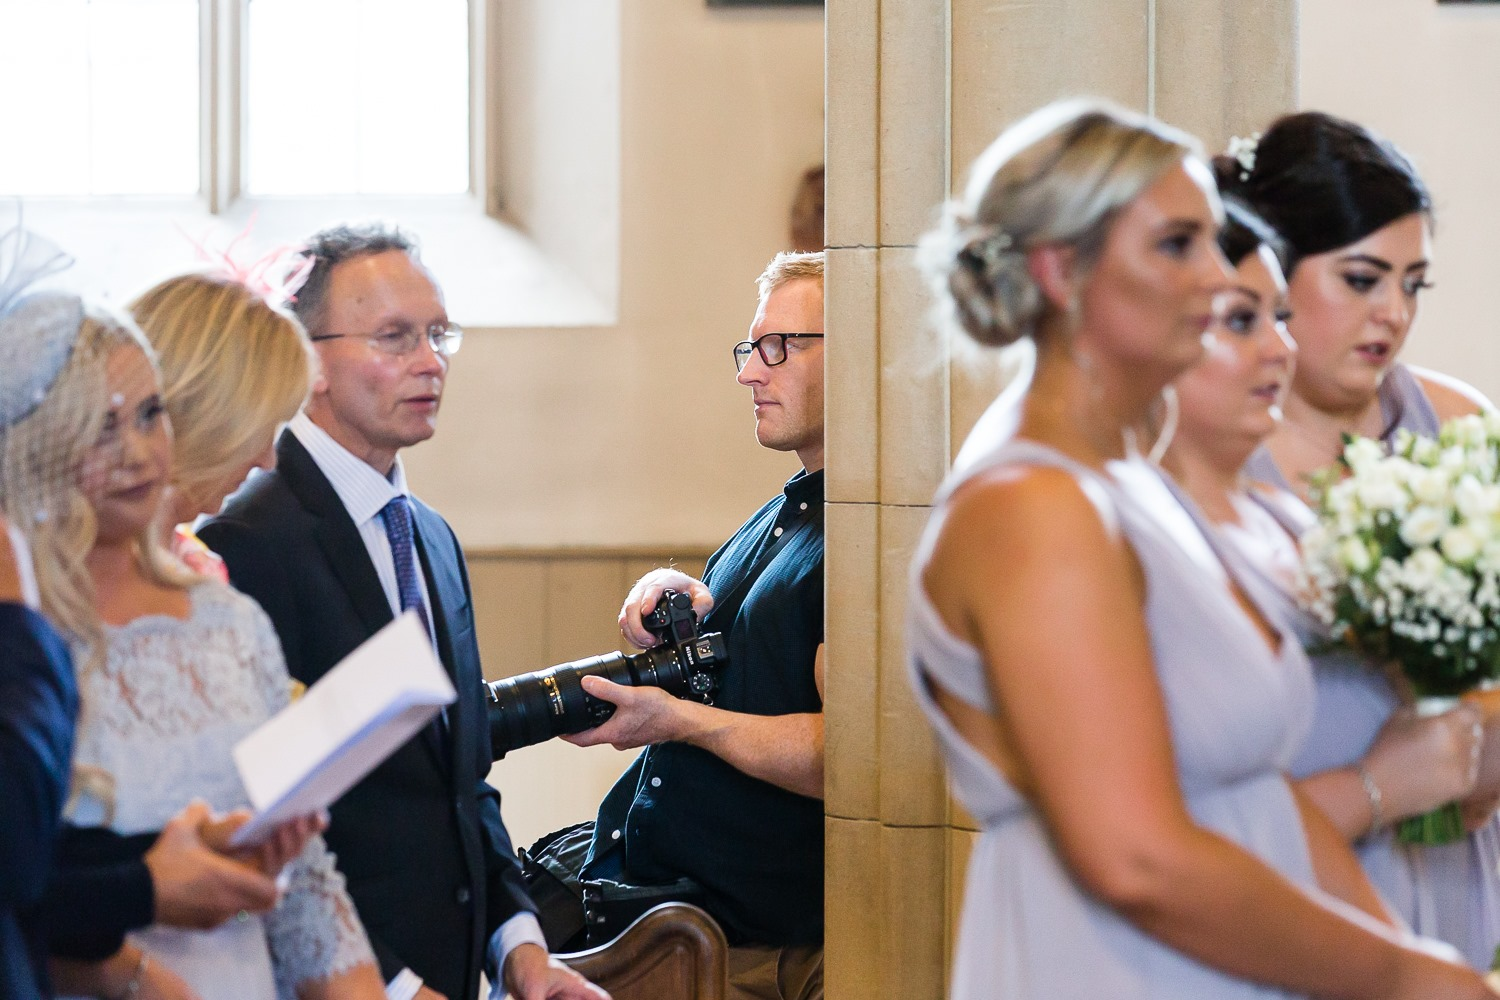 Marlow Wedding - Pro Second Shooter